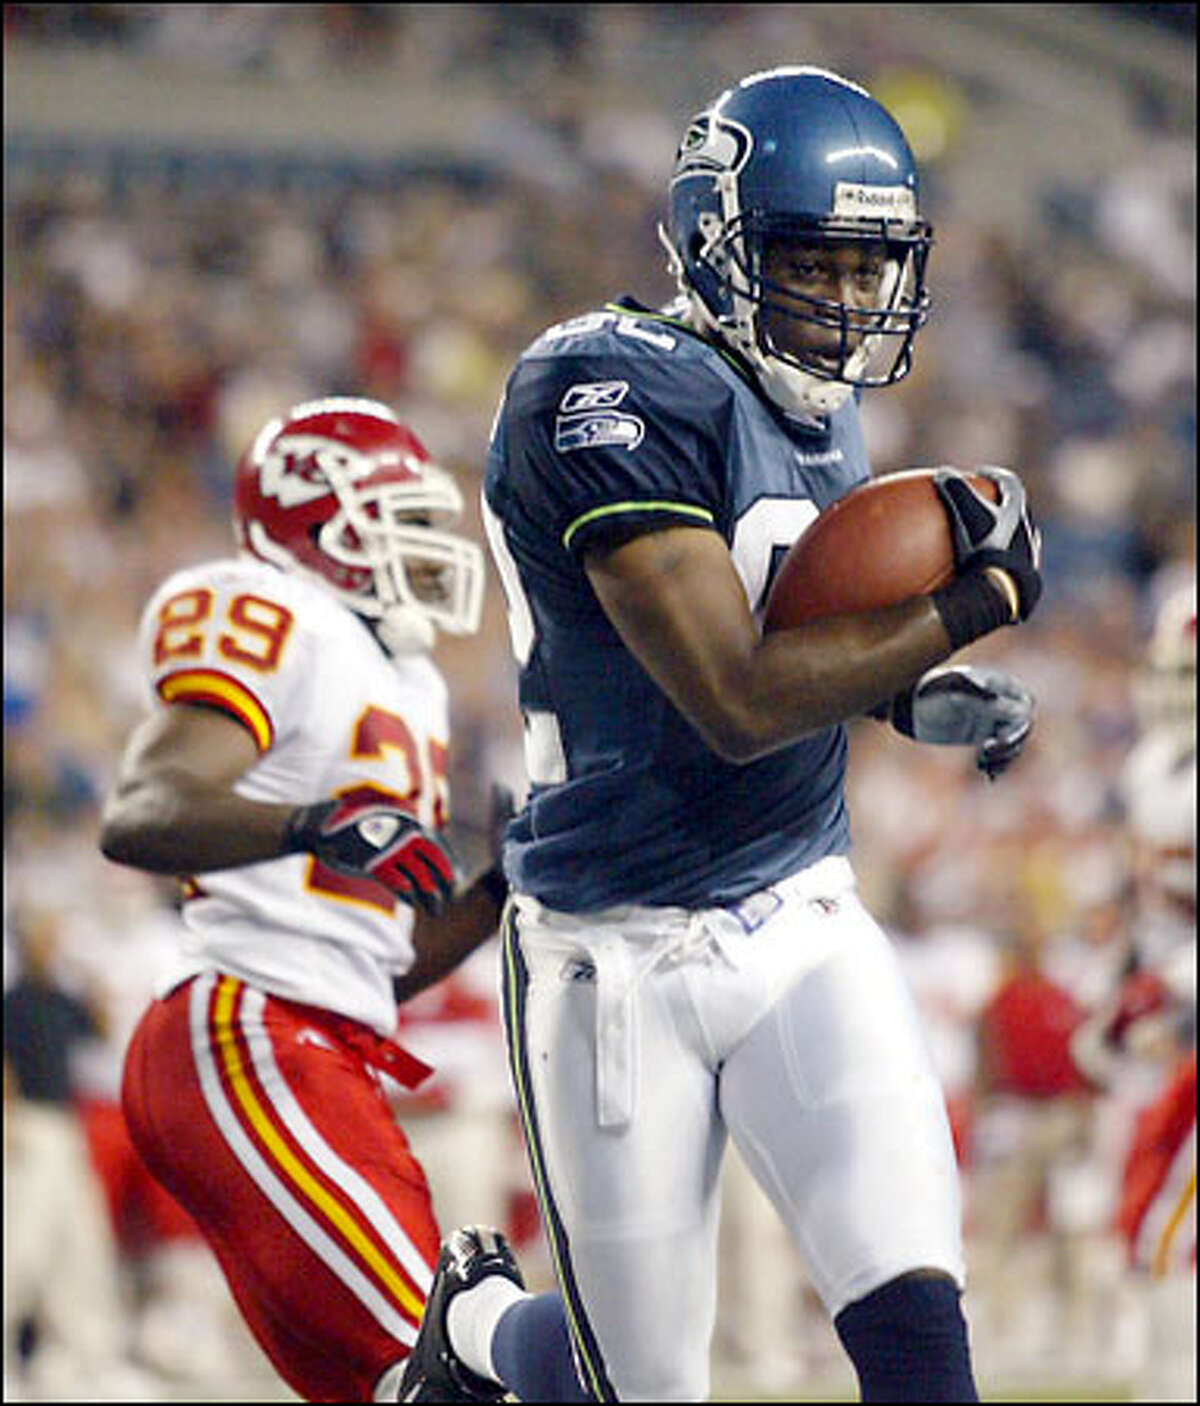 Seattle's Darrell Jackson scores on an 8-yard pass from quarterback Matt Hasselbeck, as Kansas City Chiefs defender Jason Belser runs in the background during the second quarter.